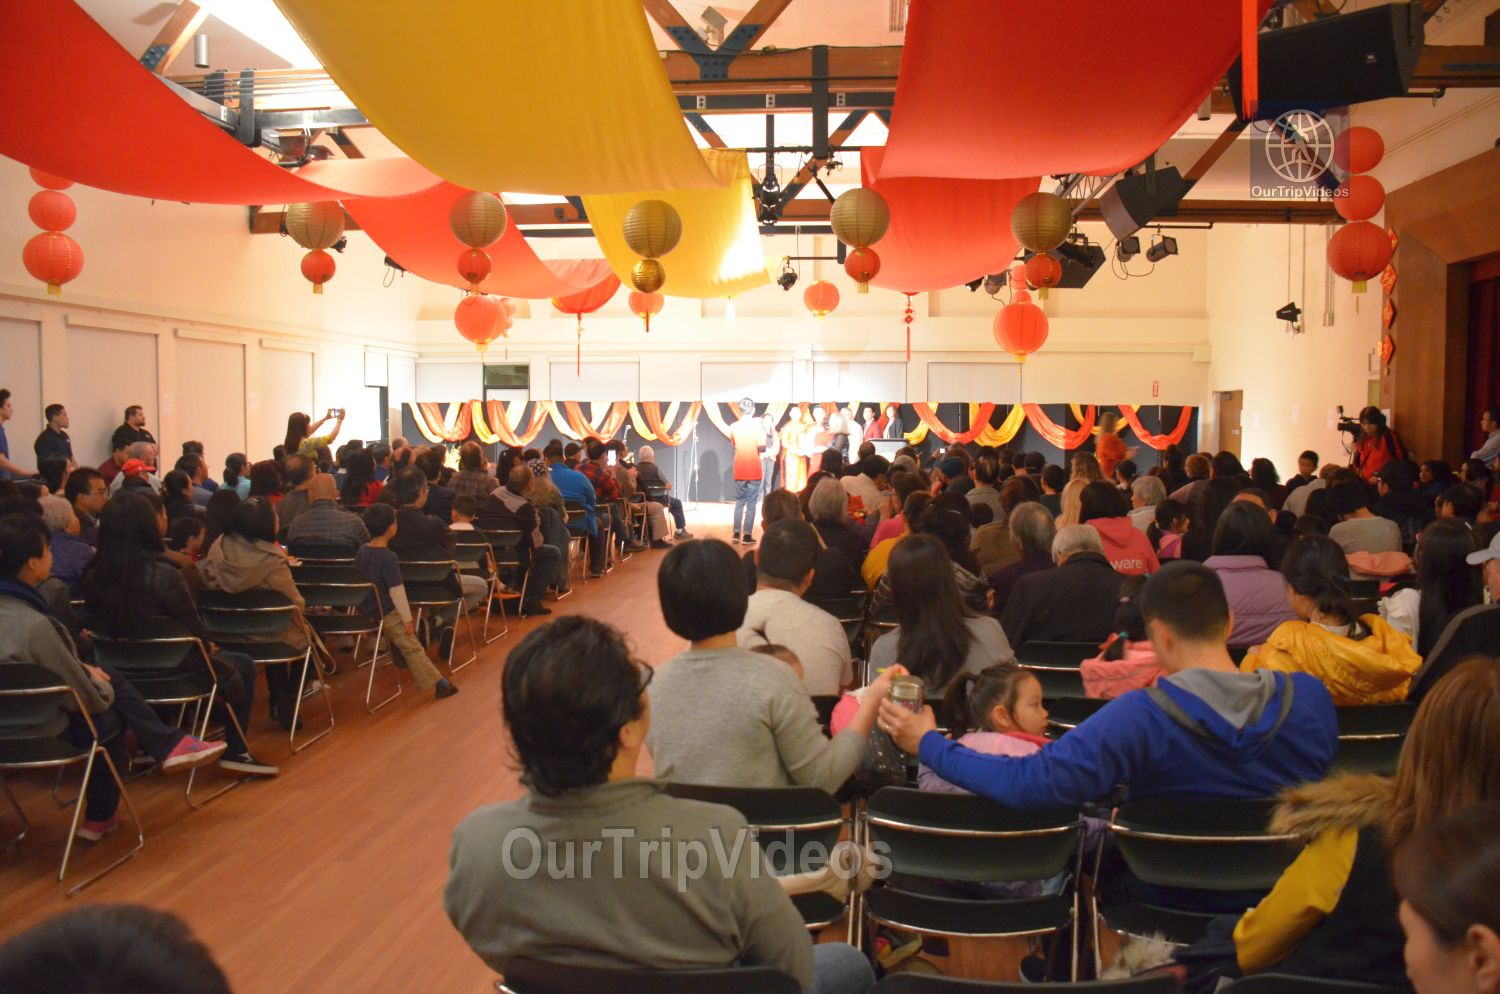 Chinese Lunar New Year Celebration, Milpitas, CA, USA - Picture 11 of 25